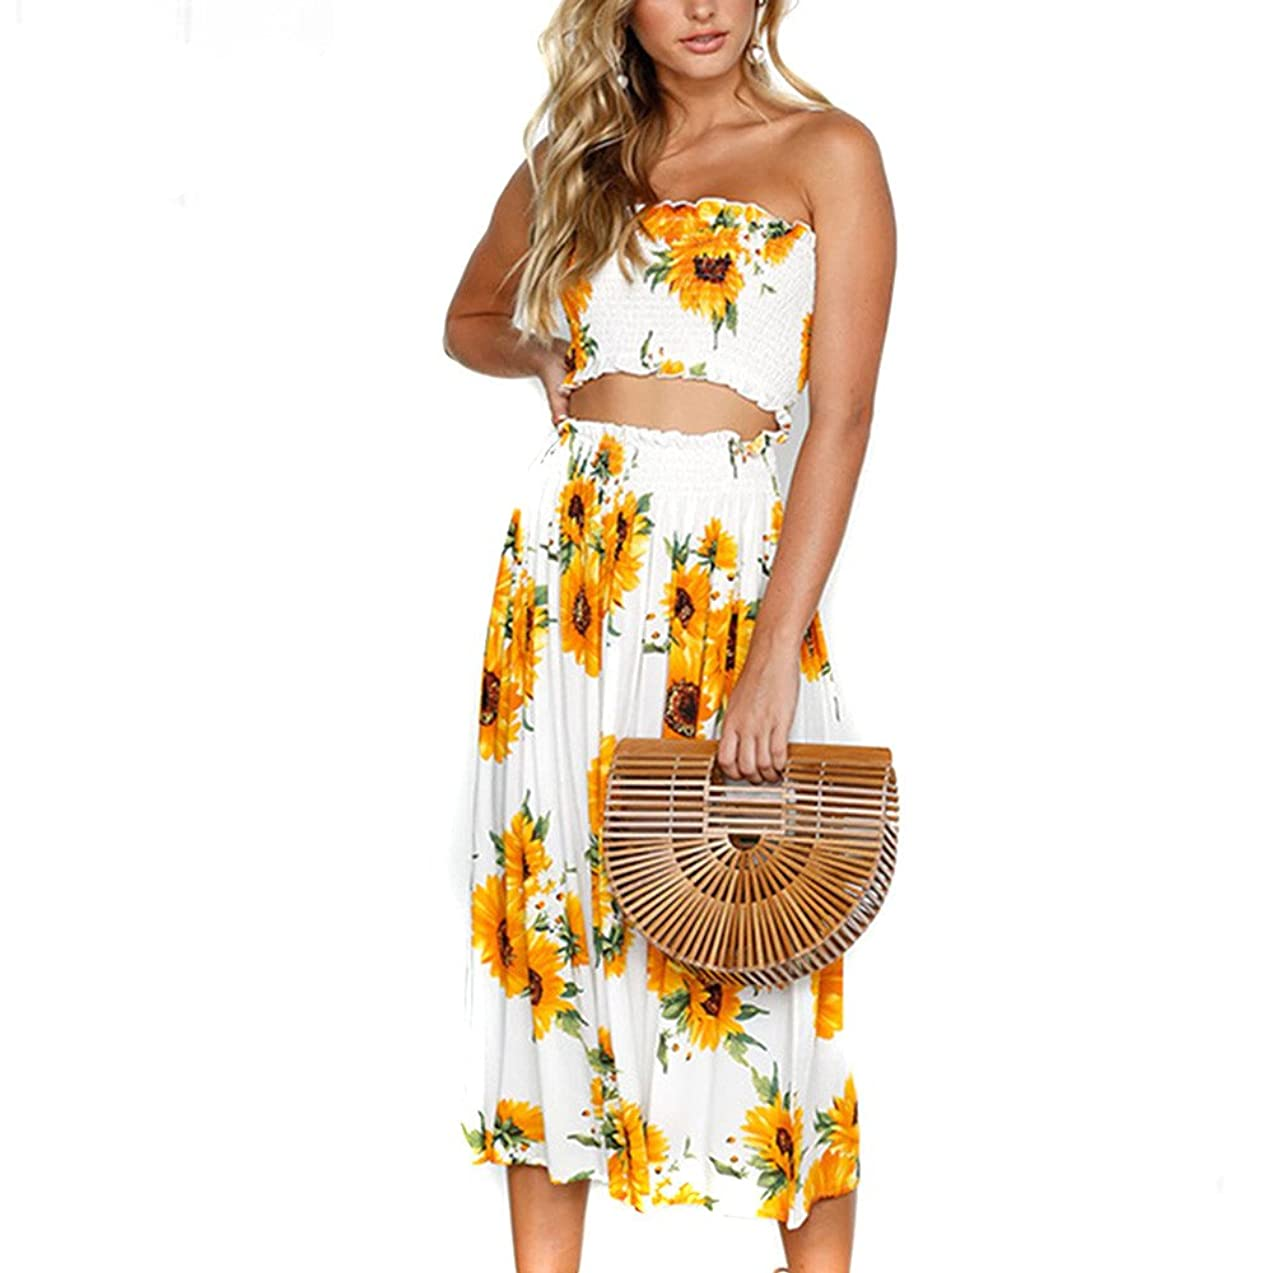 【MOHOLL】 Women's Floral Crop Top Maxi Skirt Set 2 Piece Outfit Dress bqwrjjqu891